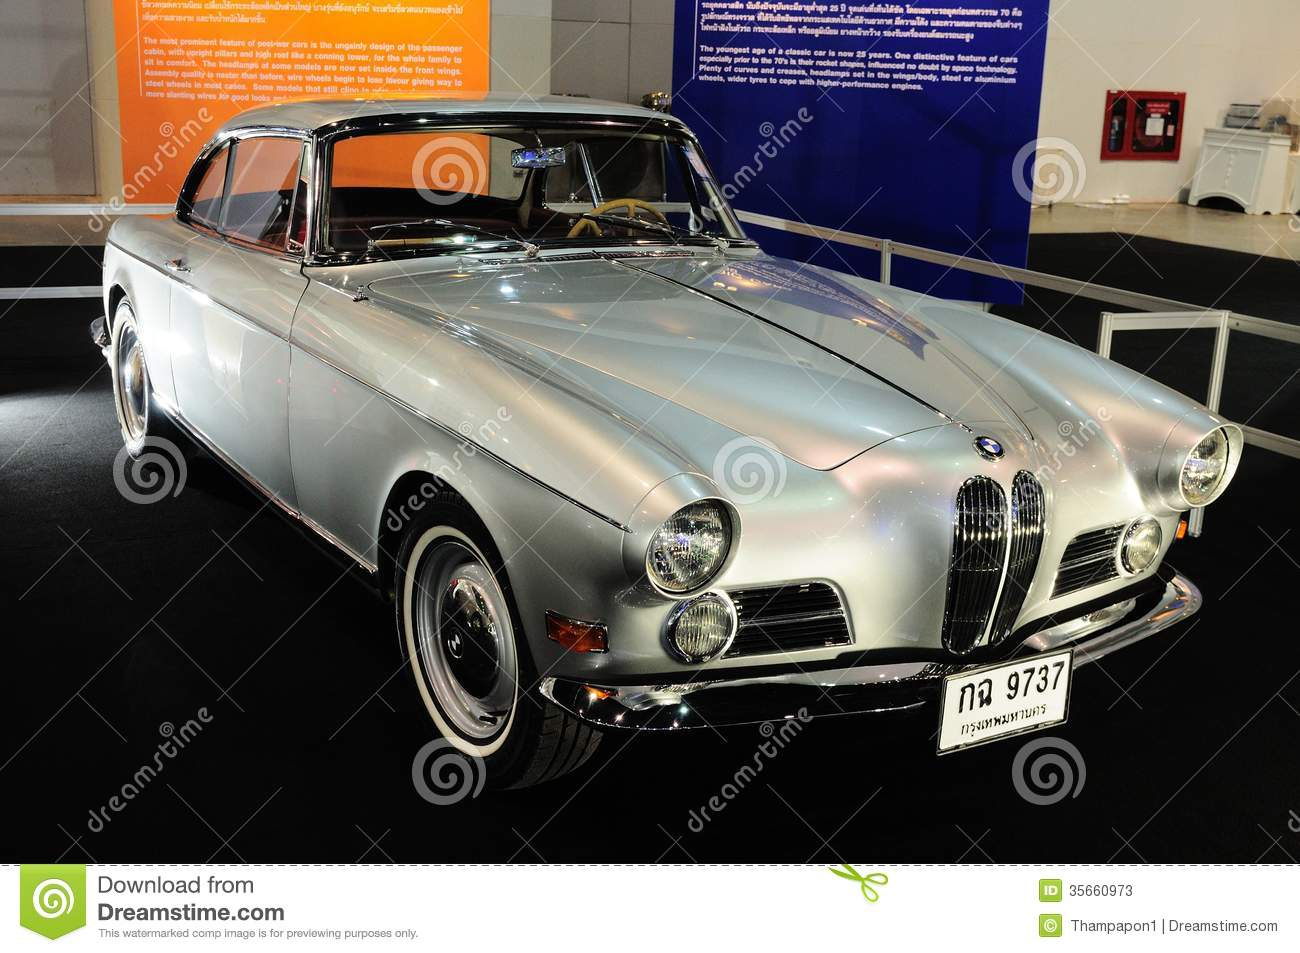 Bkk Nov 28 Bmw 503 Coupe Classic 2 Door Convertible Car On D